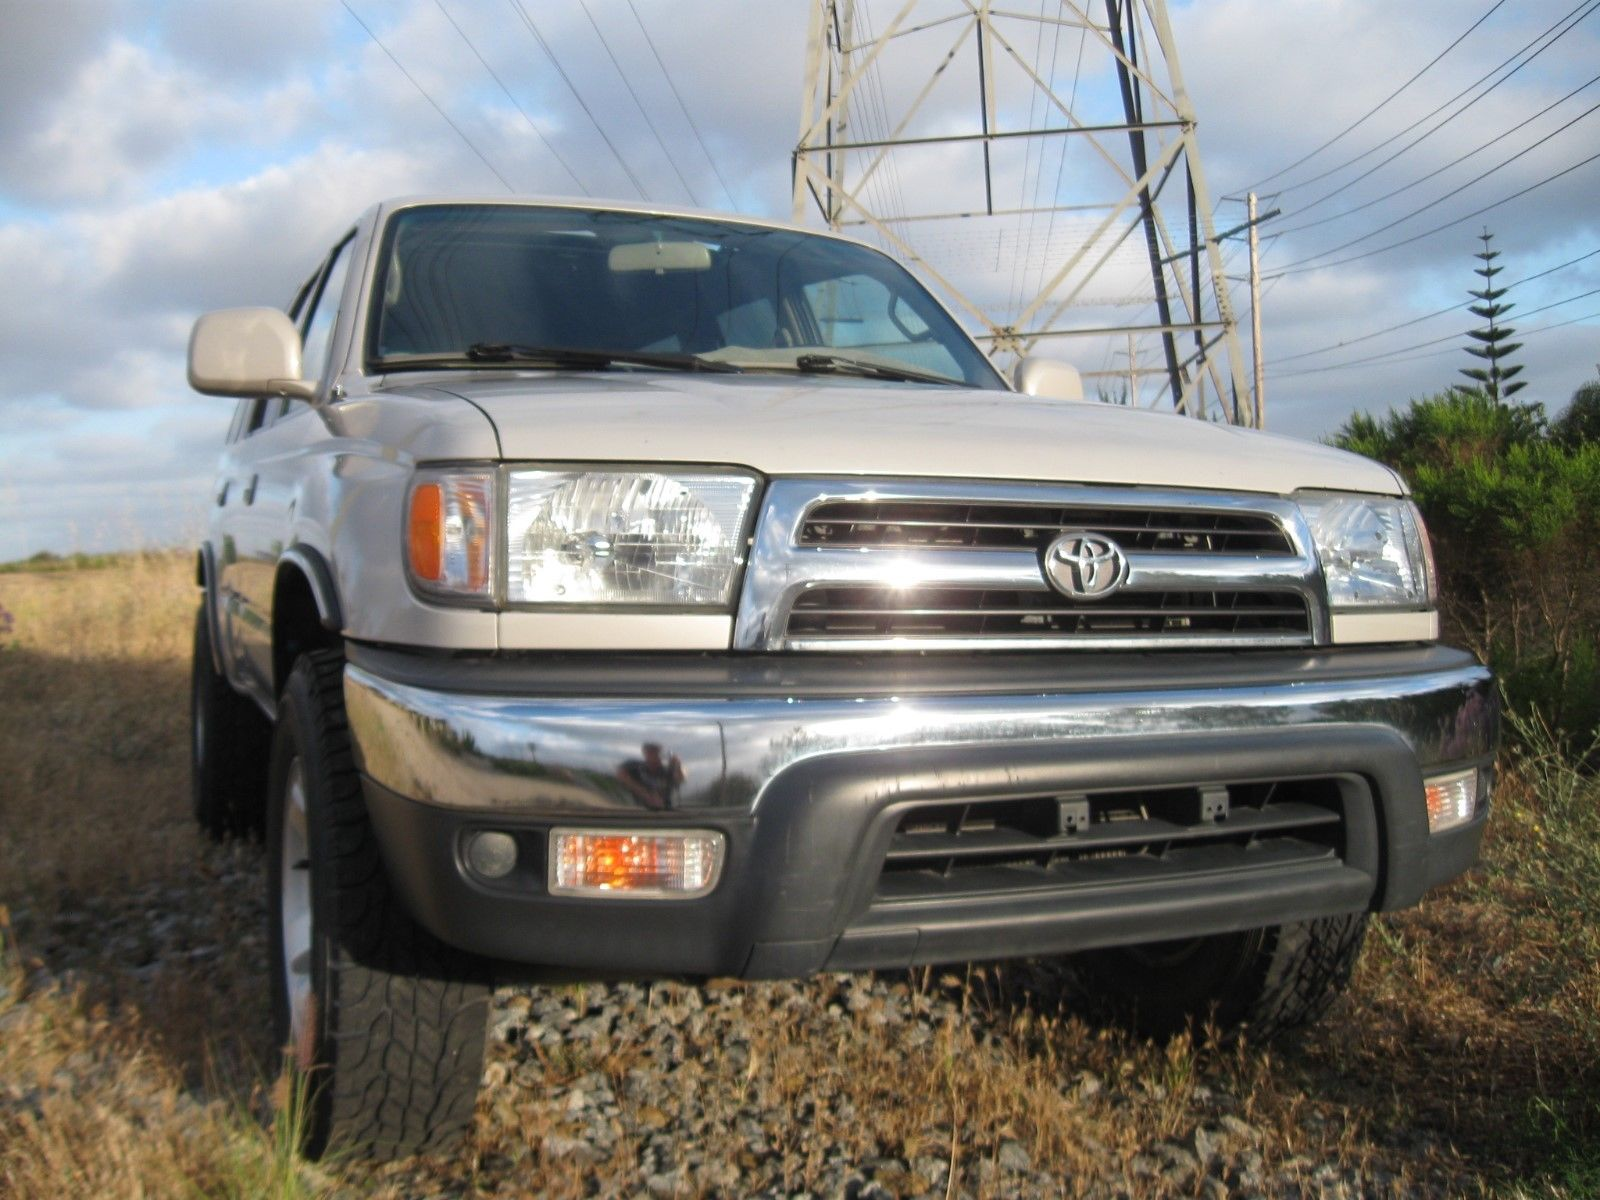 2003 Toyota Tacoma 4x4 Owners Manual Simple Instruction Guide Books 1992 4runner 2000 1998 4 Runner Service Repair Set Ebay 1996 2016